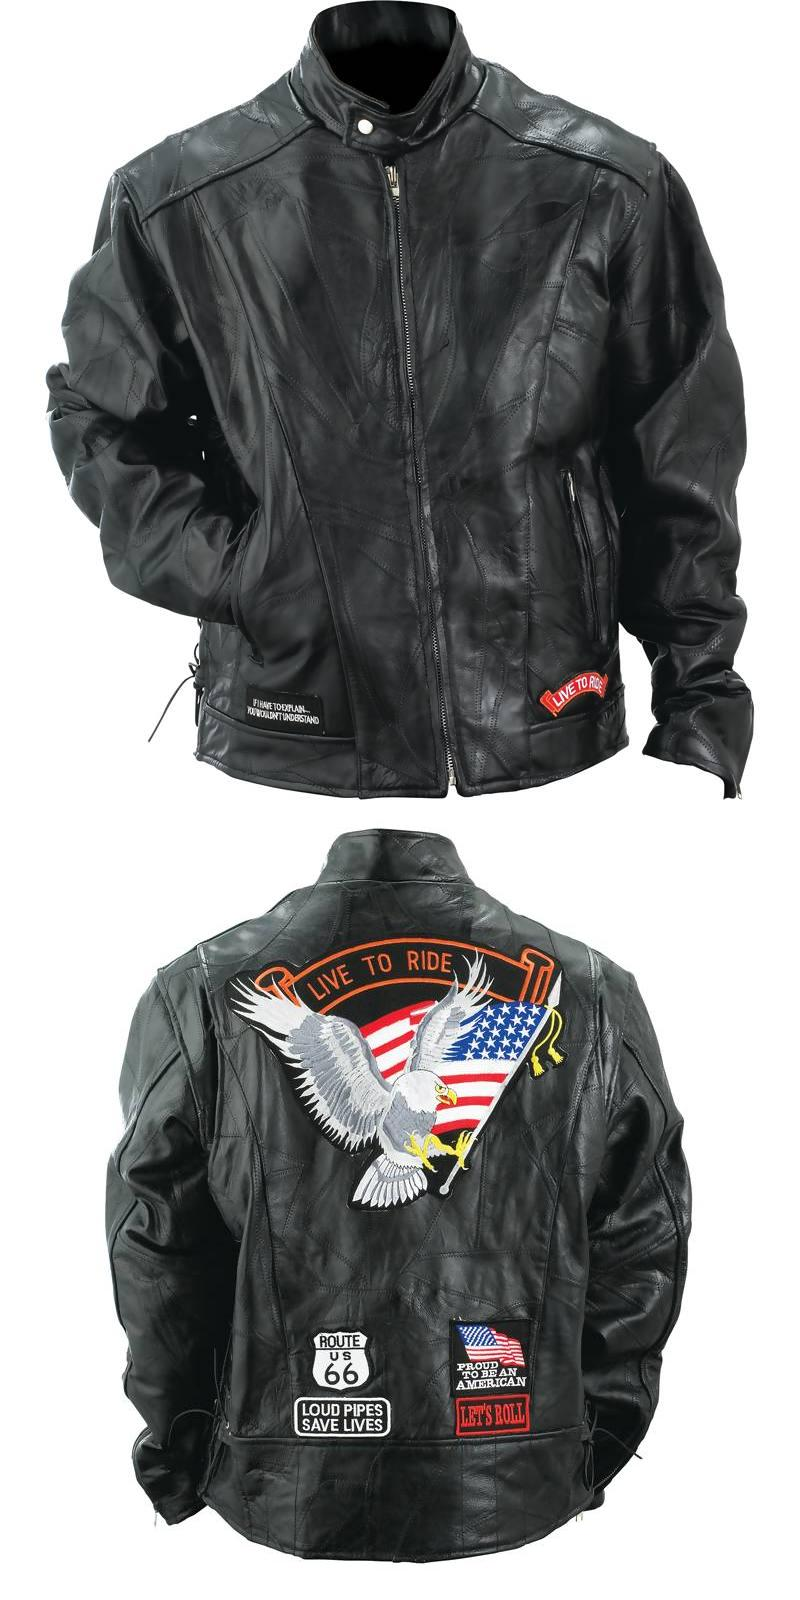 Store Locator - Cycle Gear - Motorcycle Gear and Motorcycle